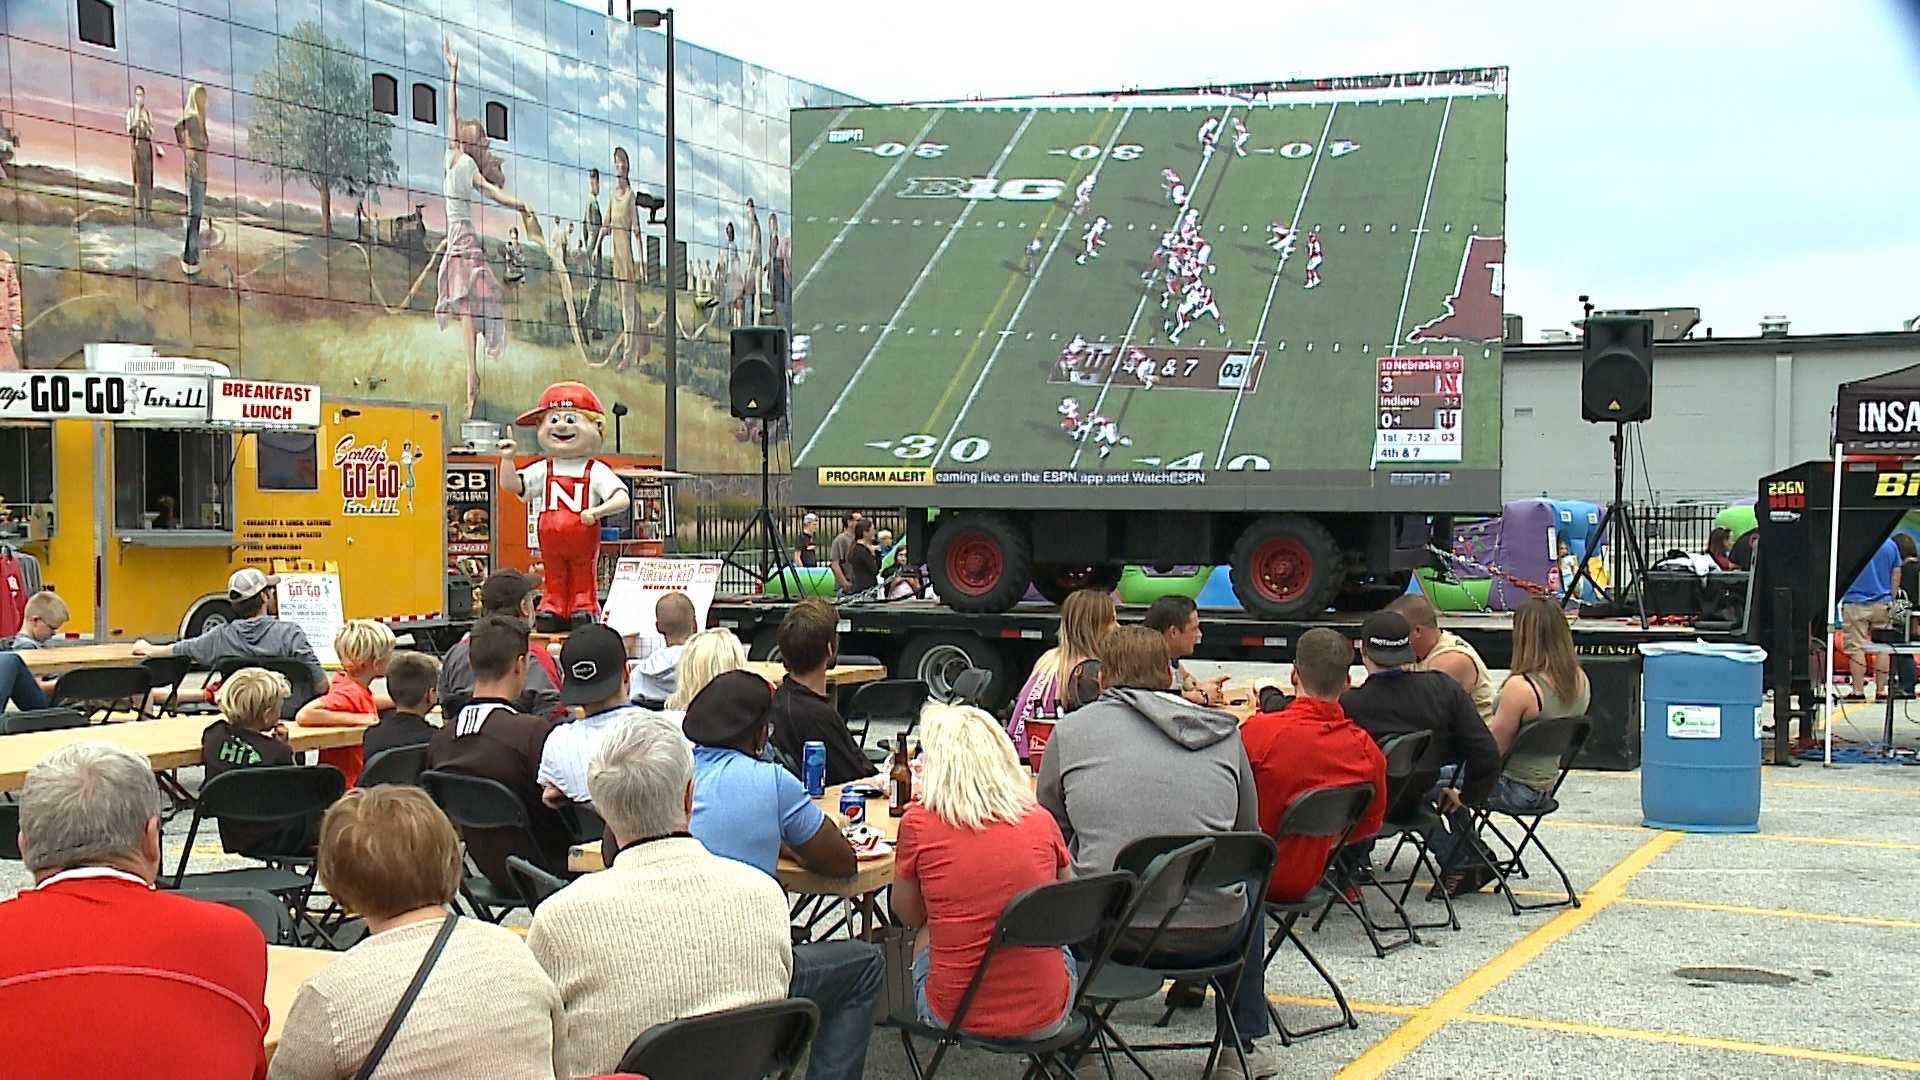 The Old Mattress Factory Bar and Grill joined forces with its competitors Saturday to bring out Husker fans together.